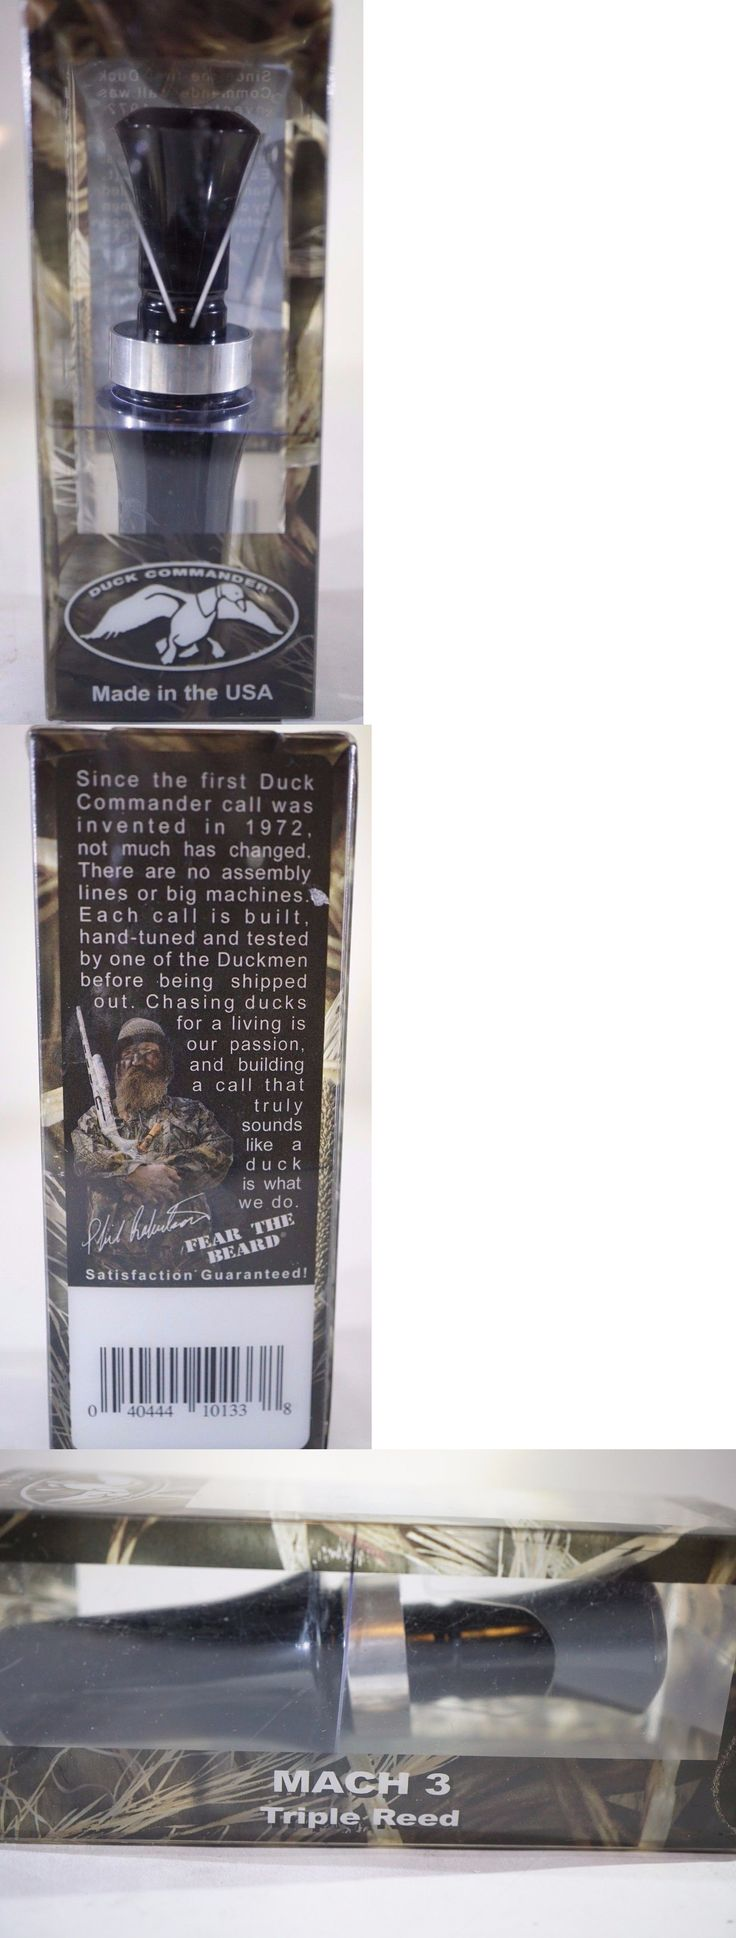 Game Calls 36252: Duck Commander Dcmach3 Mach 3 Duck Call Triple Reed Acrylic Black - New -> BUY IT NOW ONLY: $98.09 on eBay!